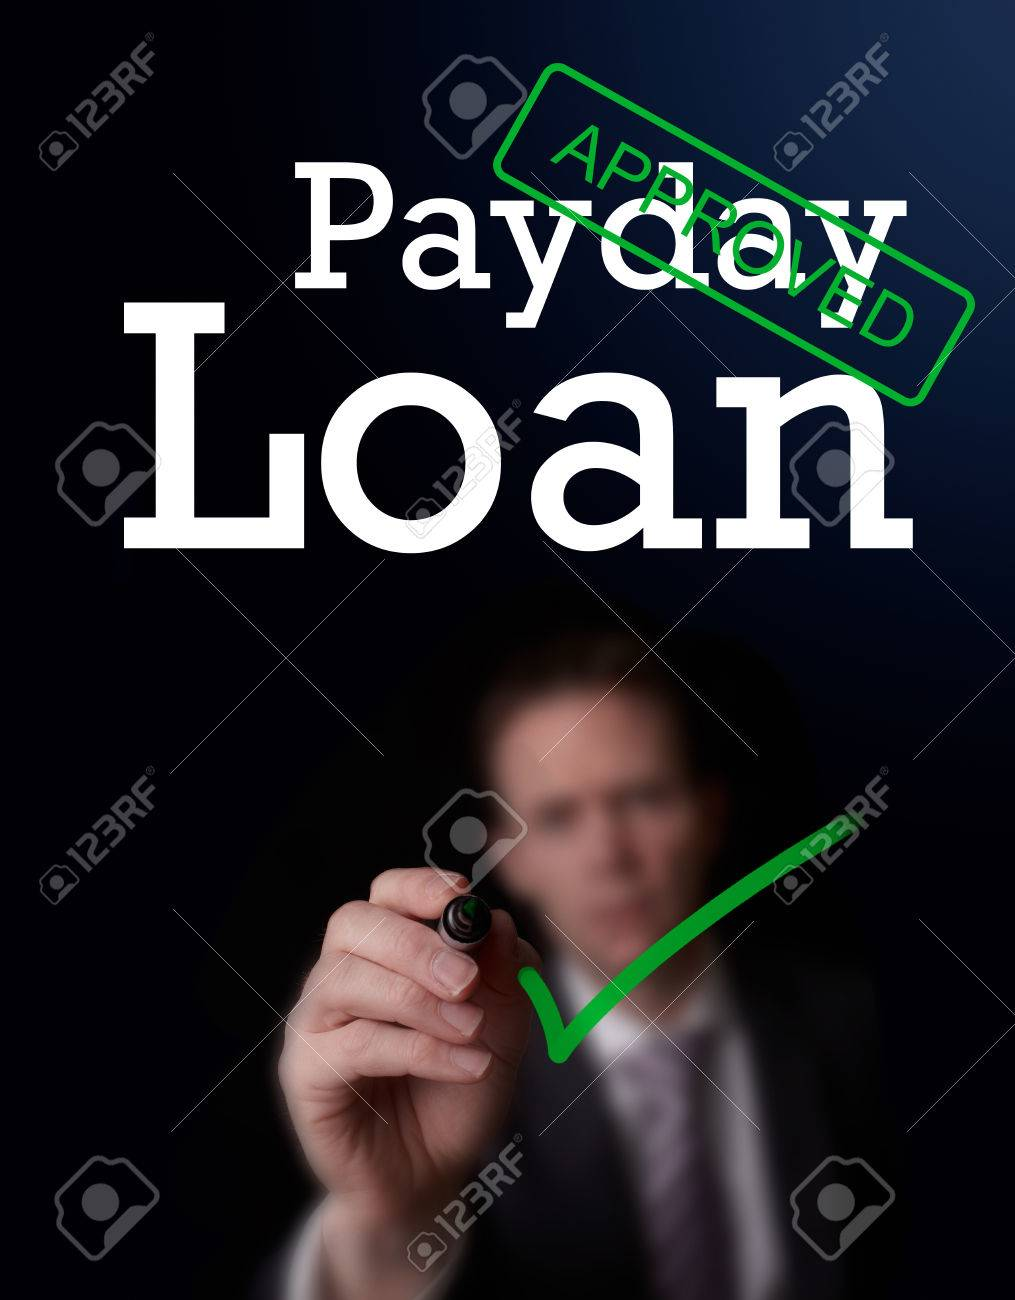 Payday loans jacksonville fl picture 7